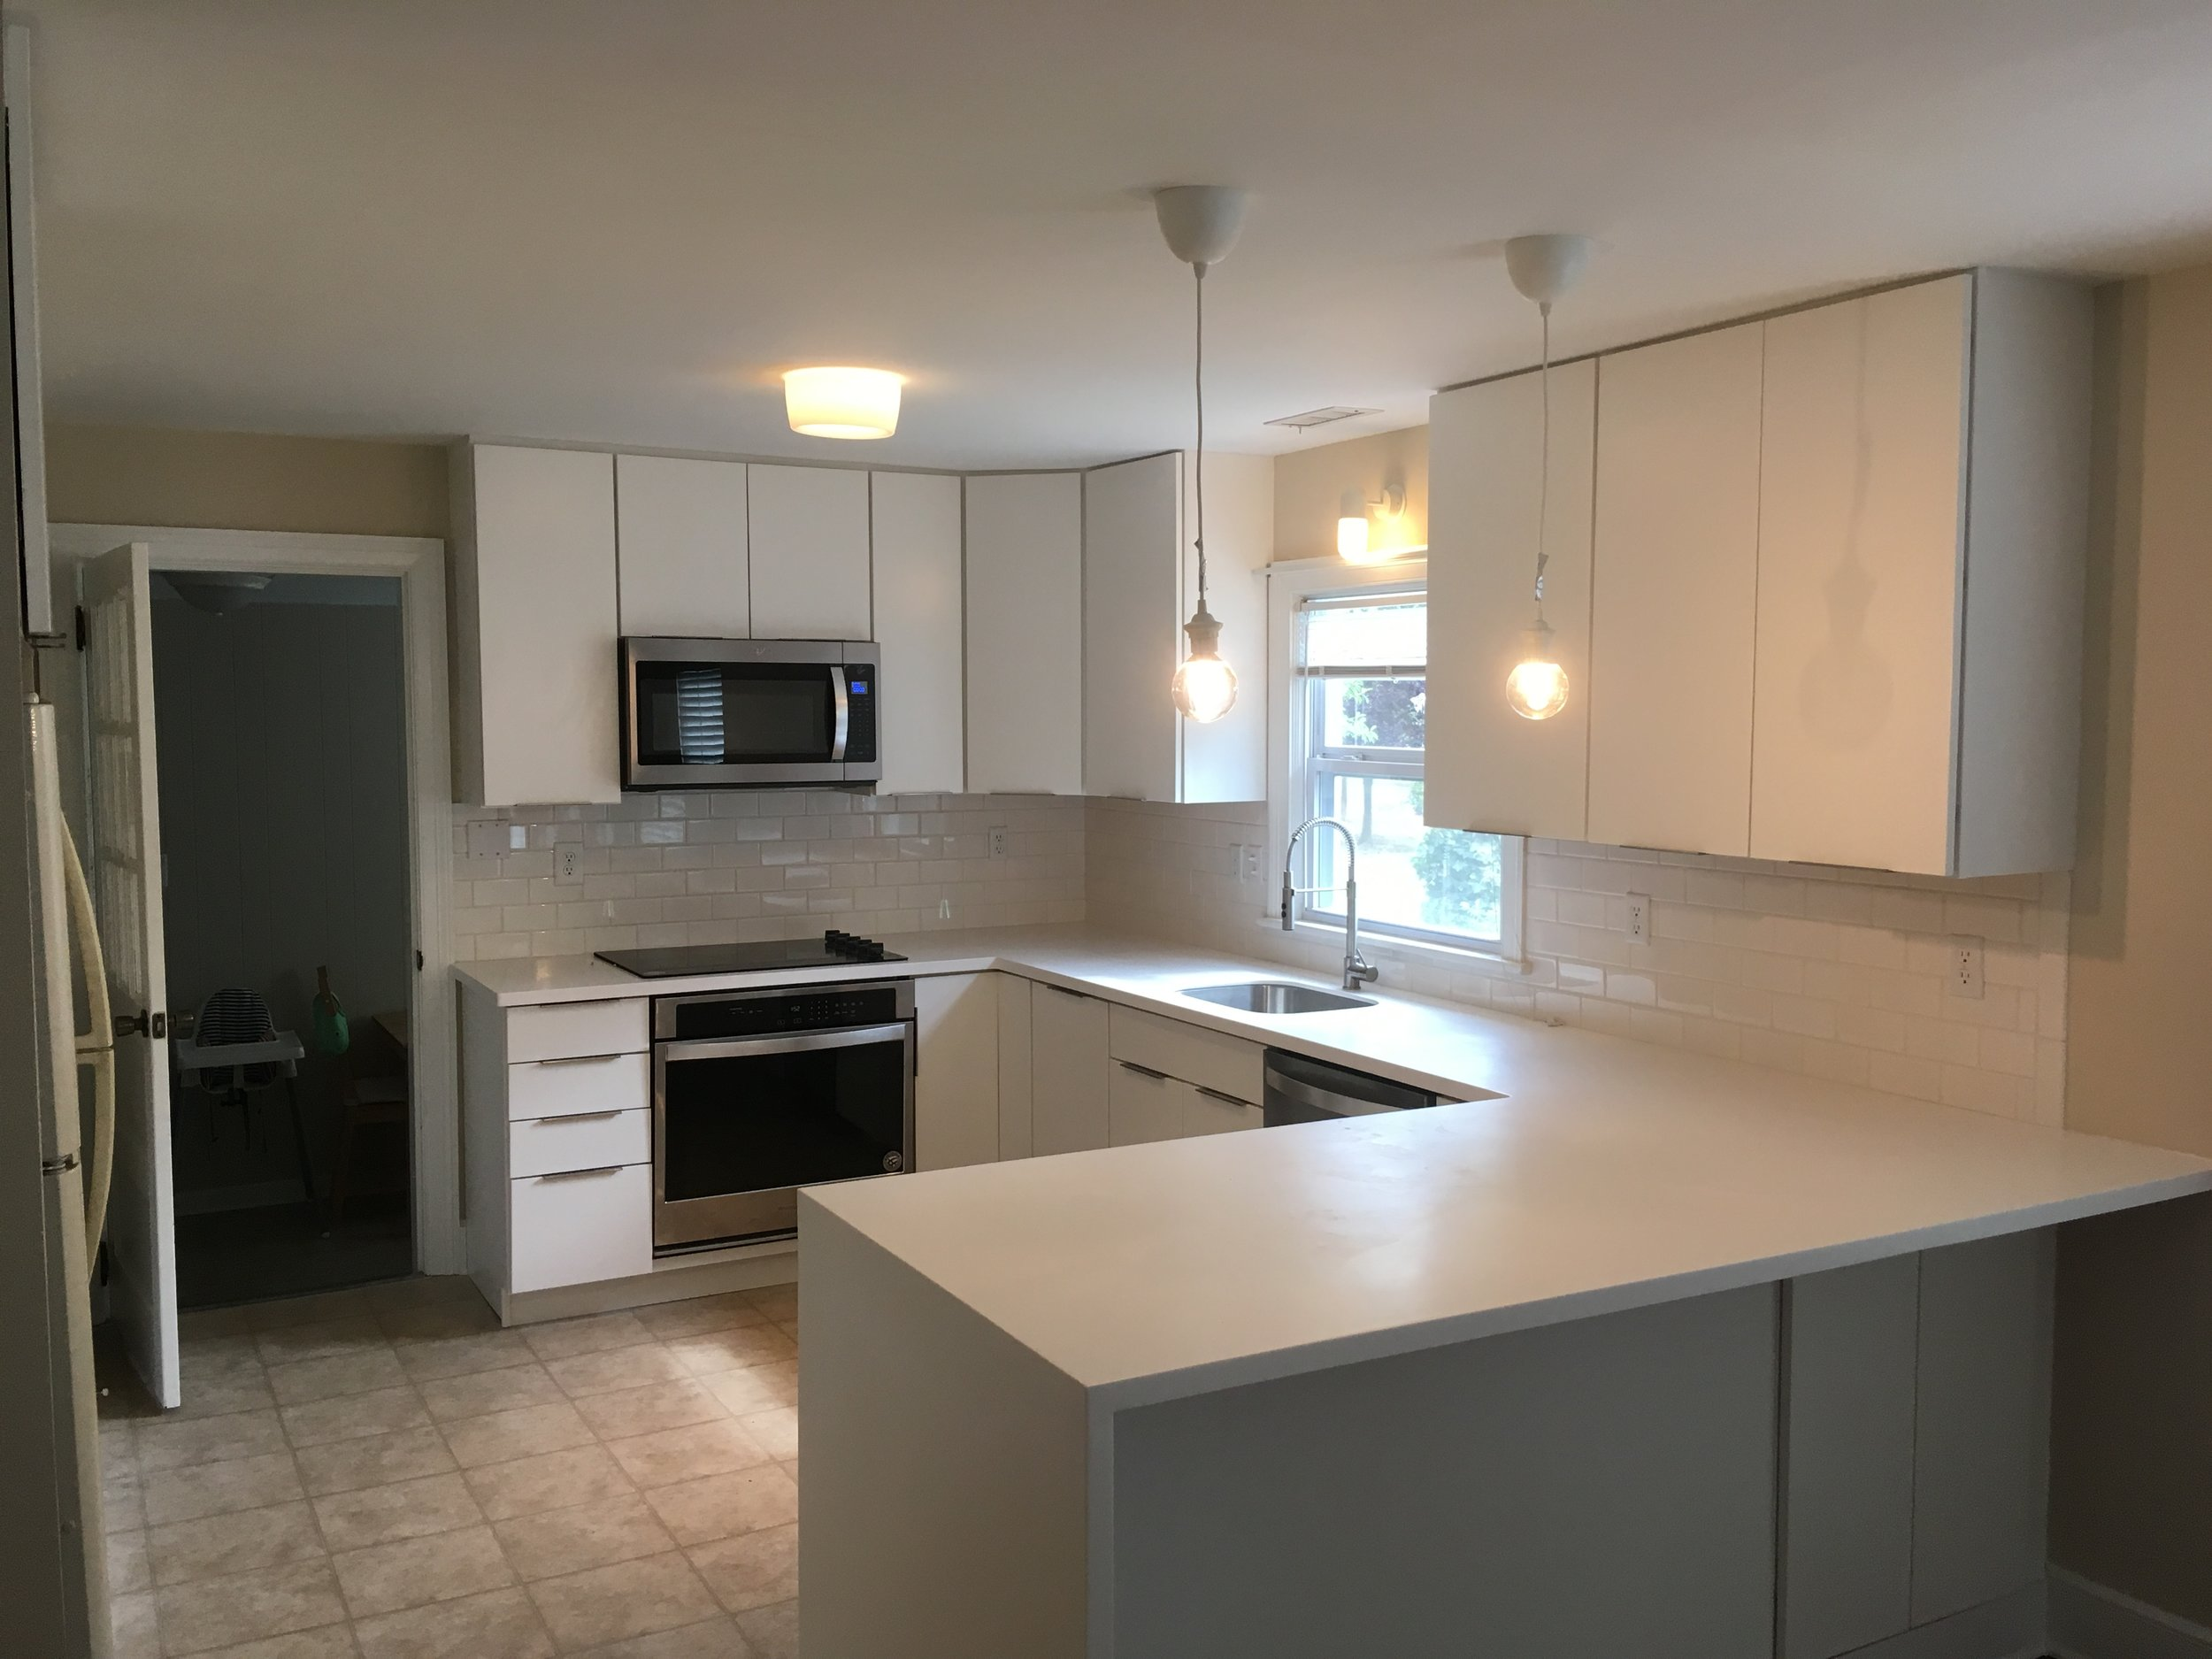 This new kitchen is complete with new Waypoint cabinets and Glacier white corian waterfall countertops.